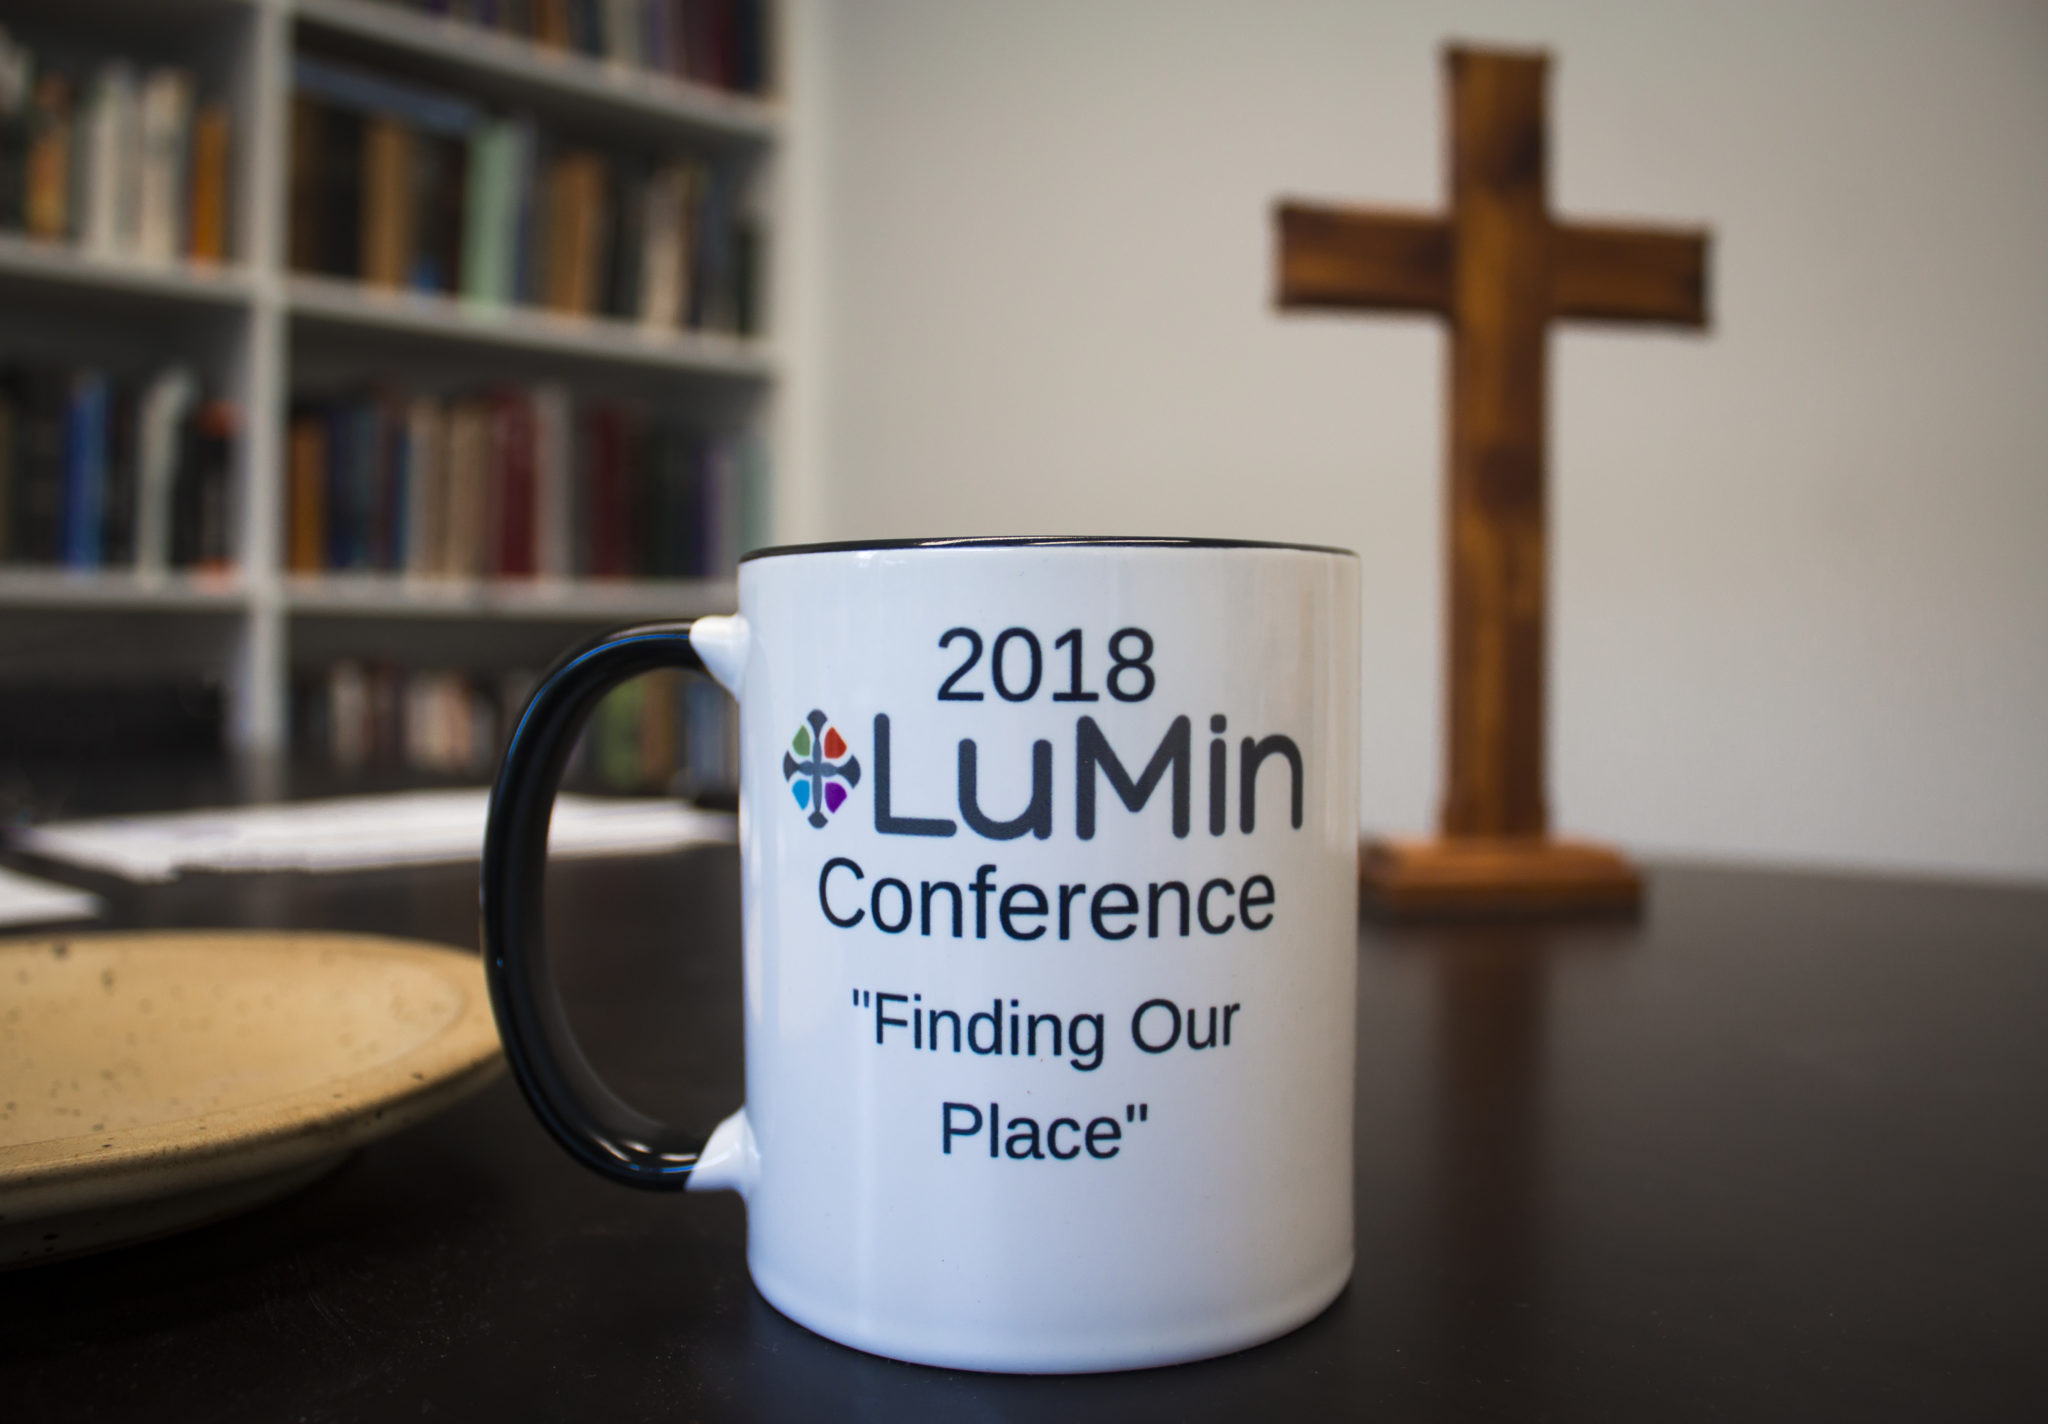 2018 LuMin Conference Schedule and More